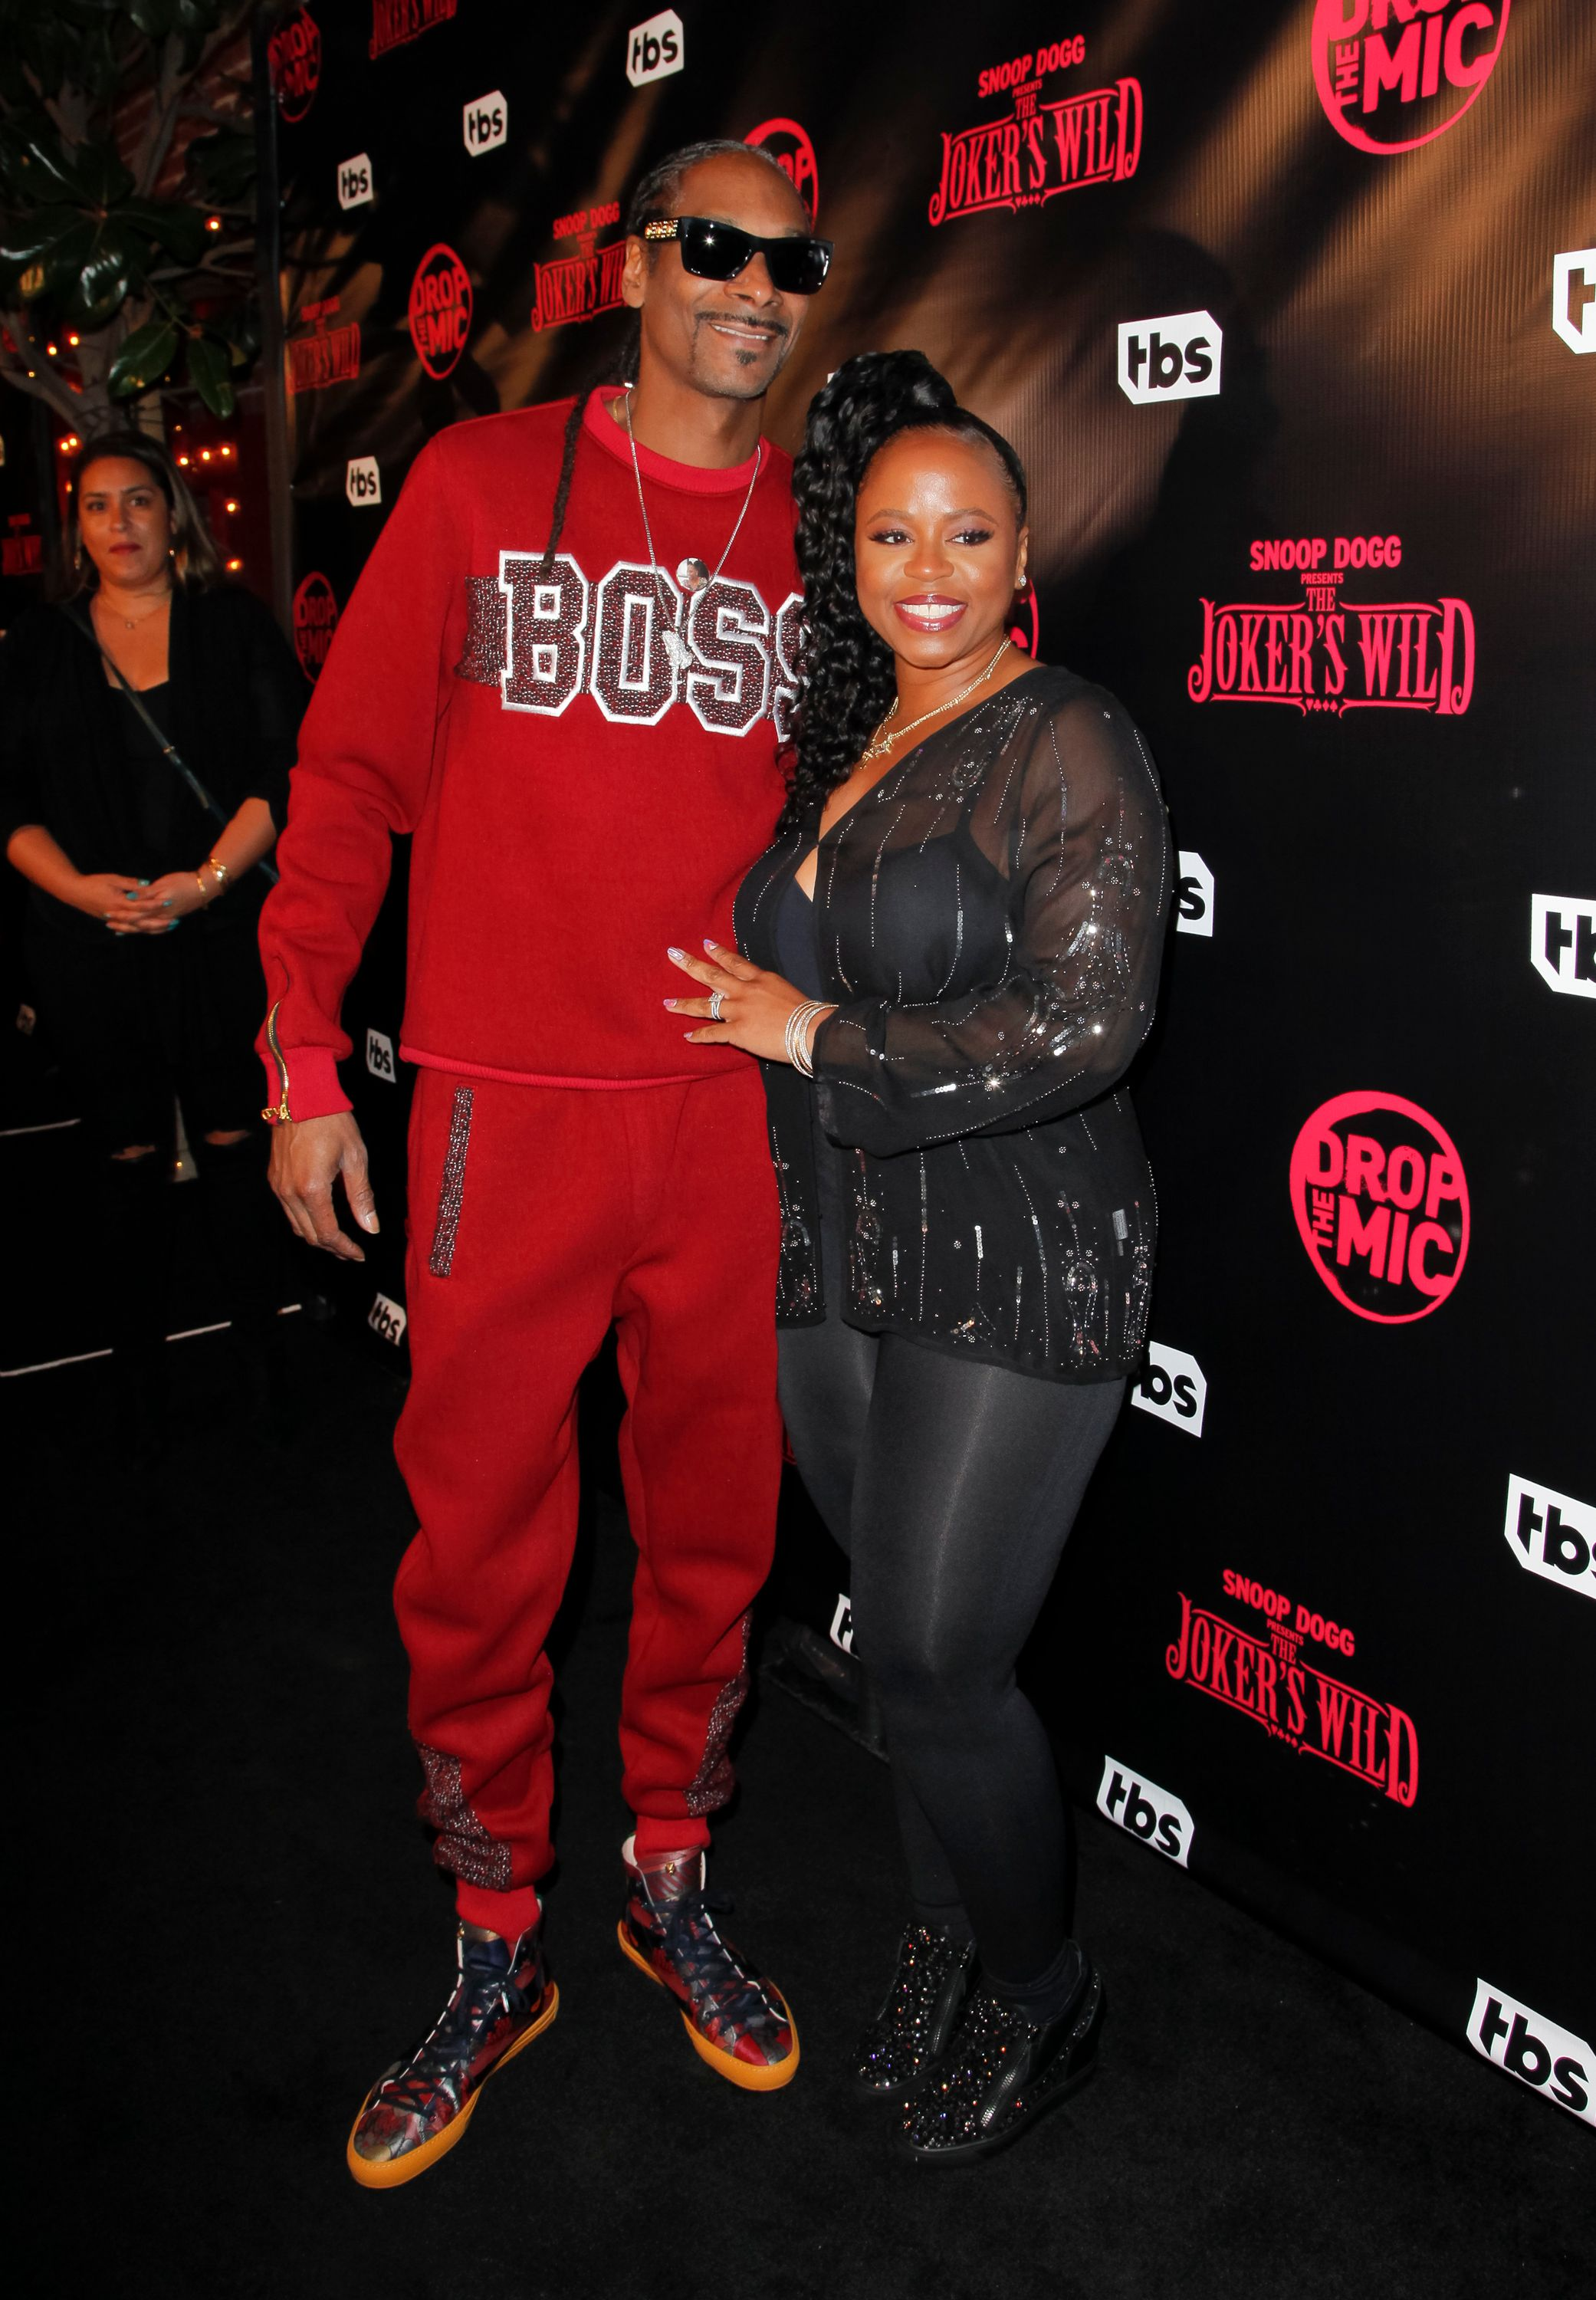 Snoop Dogg and Shante Broadus at the premiere for TBS's 'Drop The Mic' and 'The Joker's Wild' at The Highlight Room on October 11, 2017. | Source: Getty Images